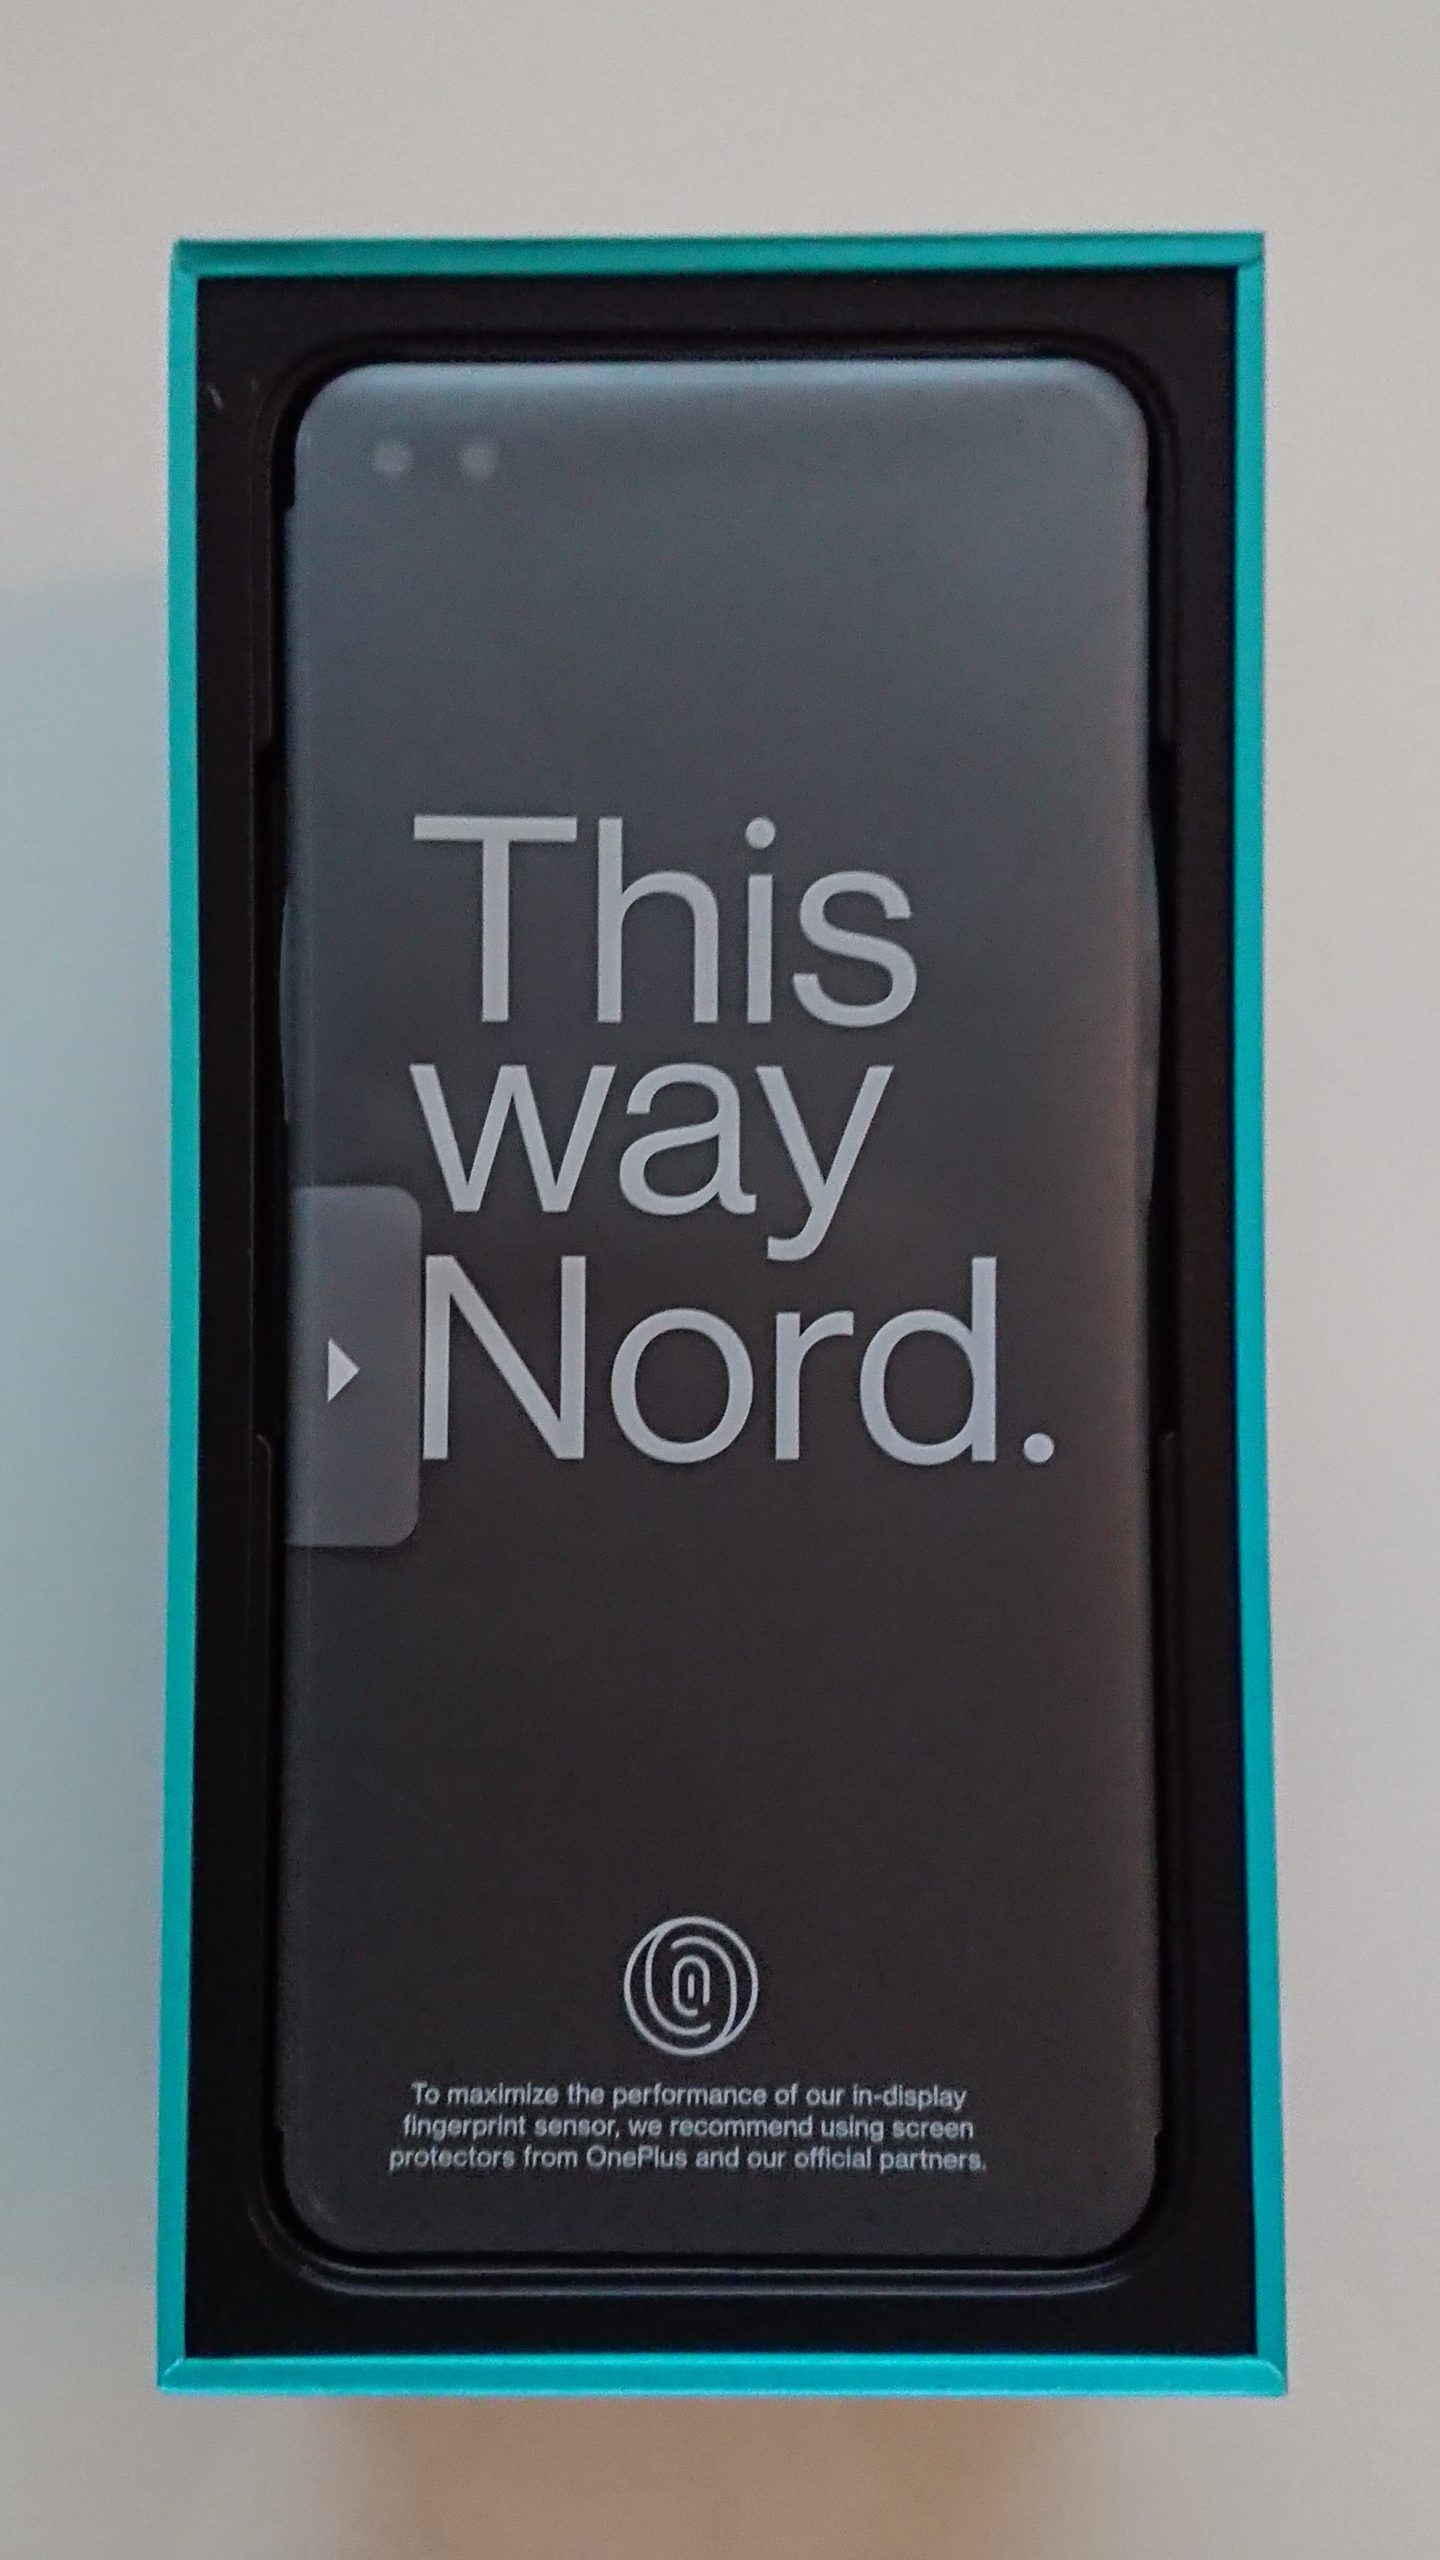 Nord packaging